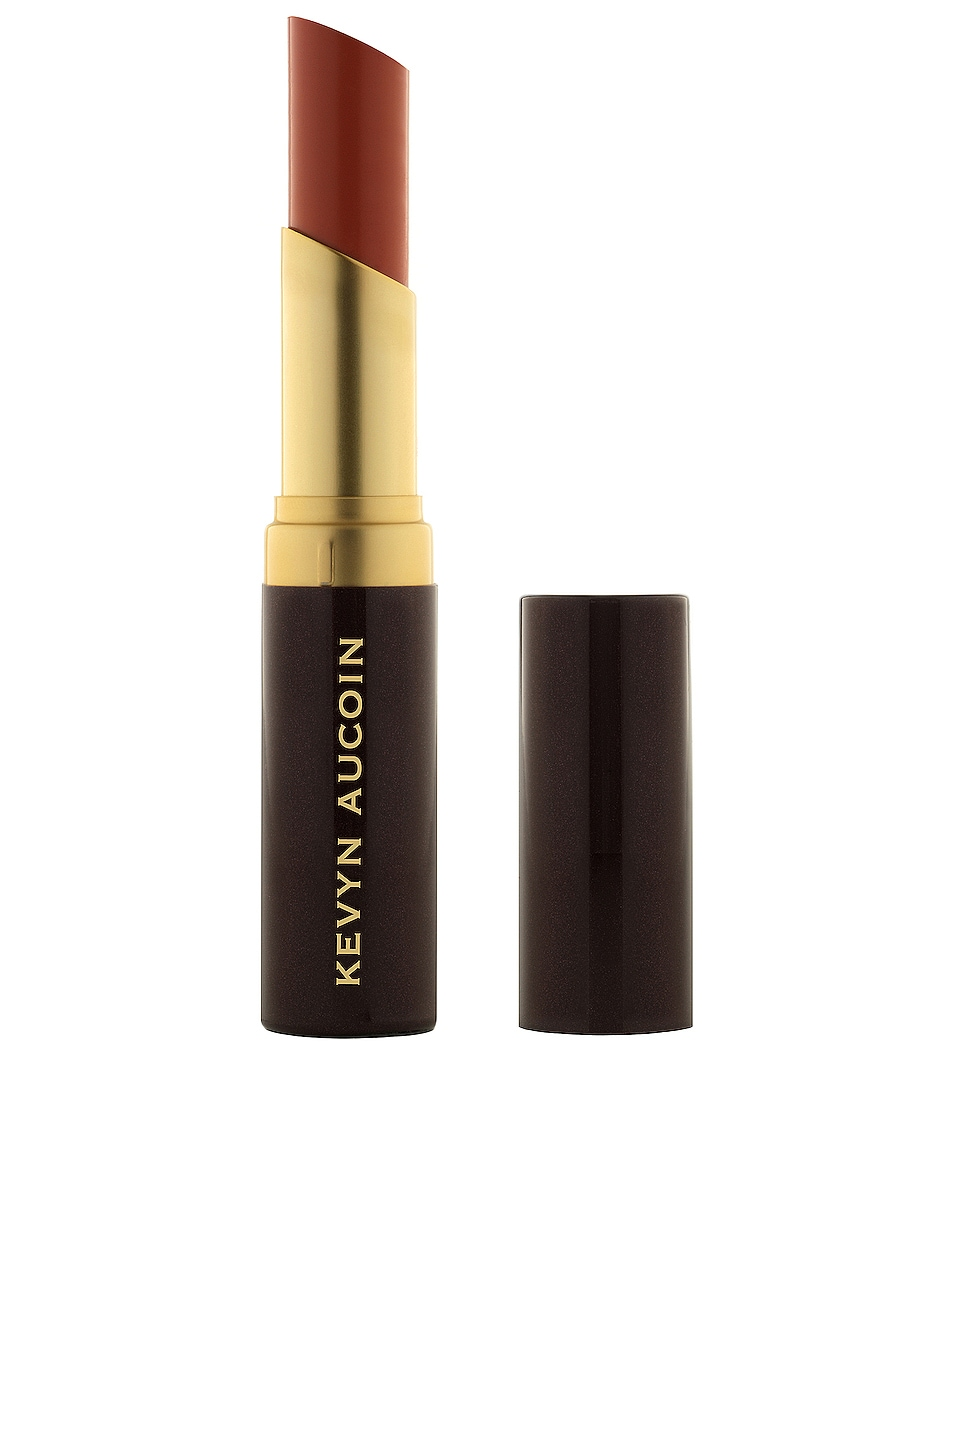 Kevyn Aucoin The Matte Lip Color in Relentless